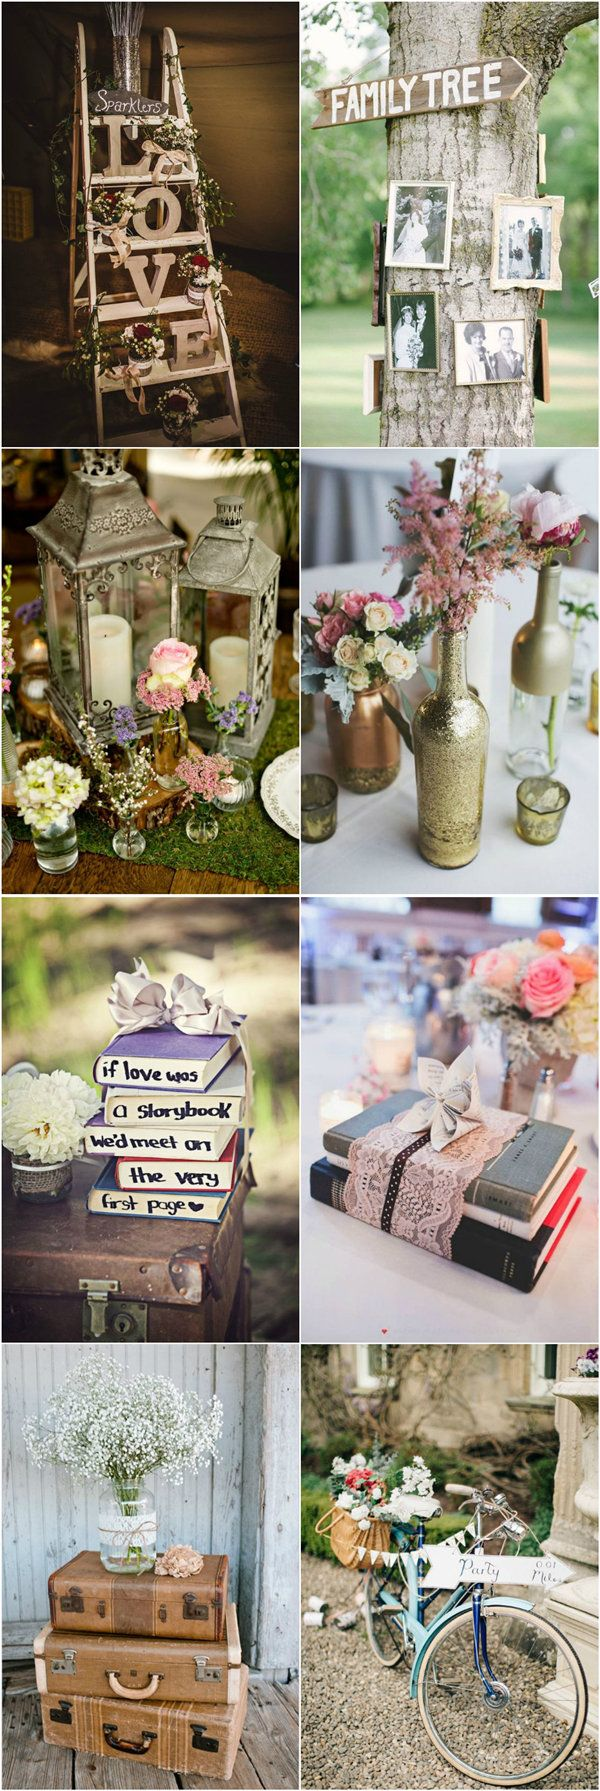 Shabby Chic Vinate Wedding Decorations And Centerpieces Vintage Wedding Theme Shabby Chic Wedding Decor Wedding Centerpieces